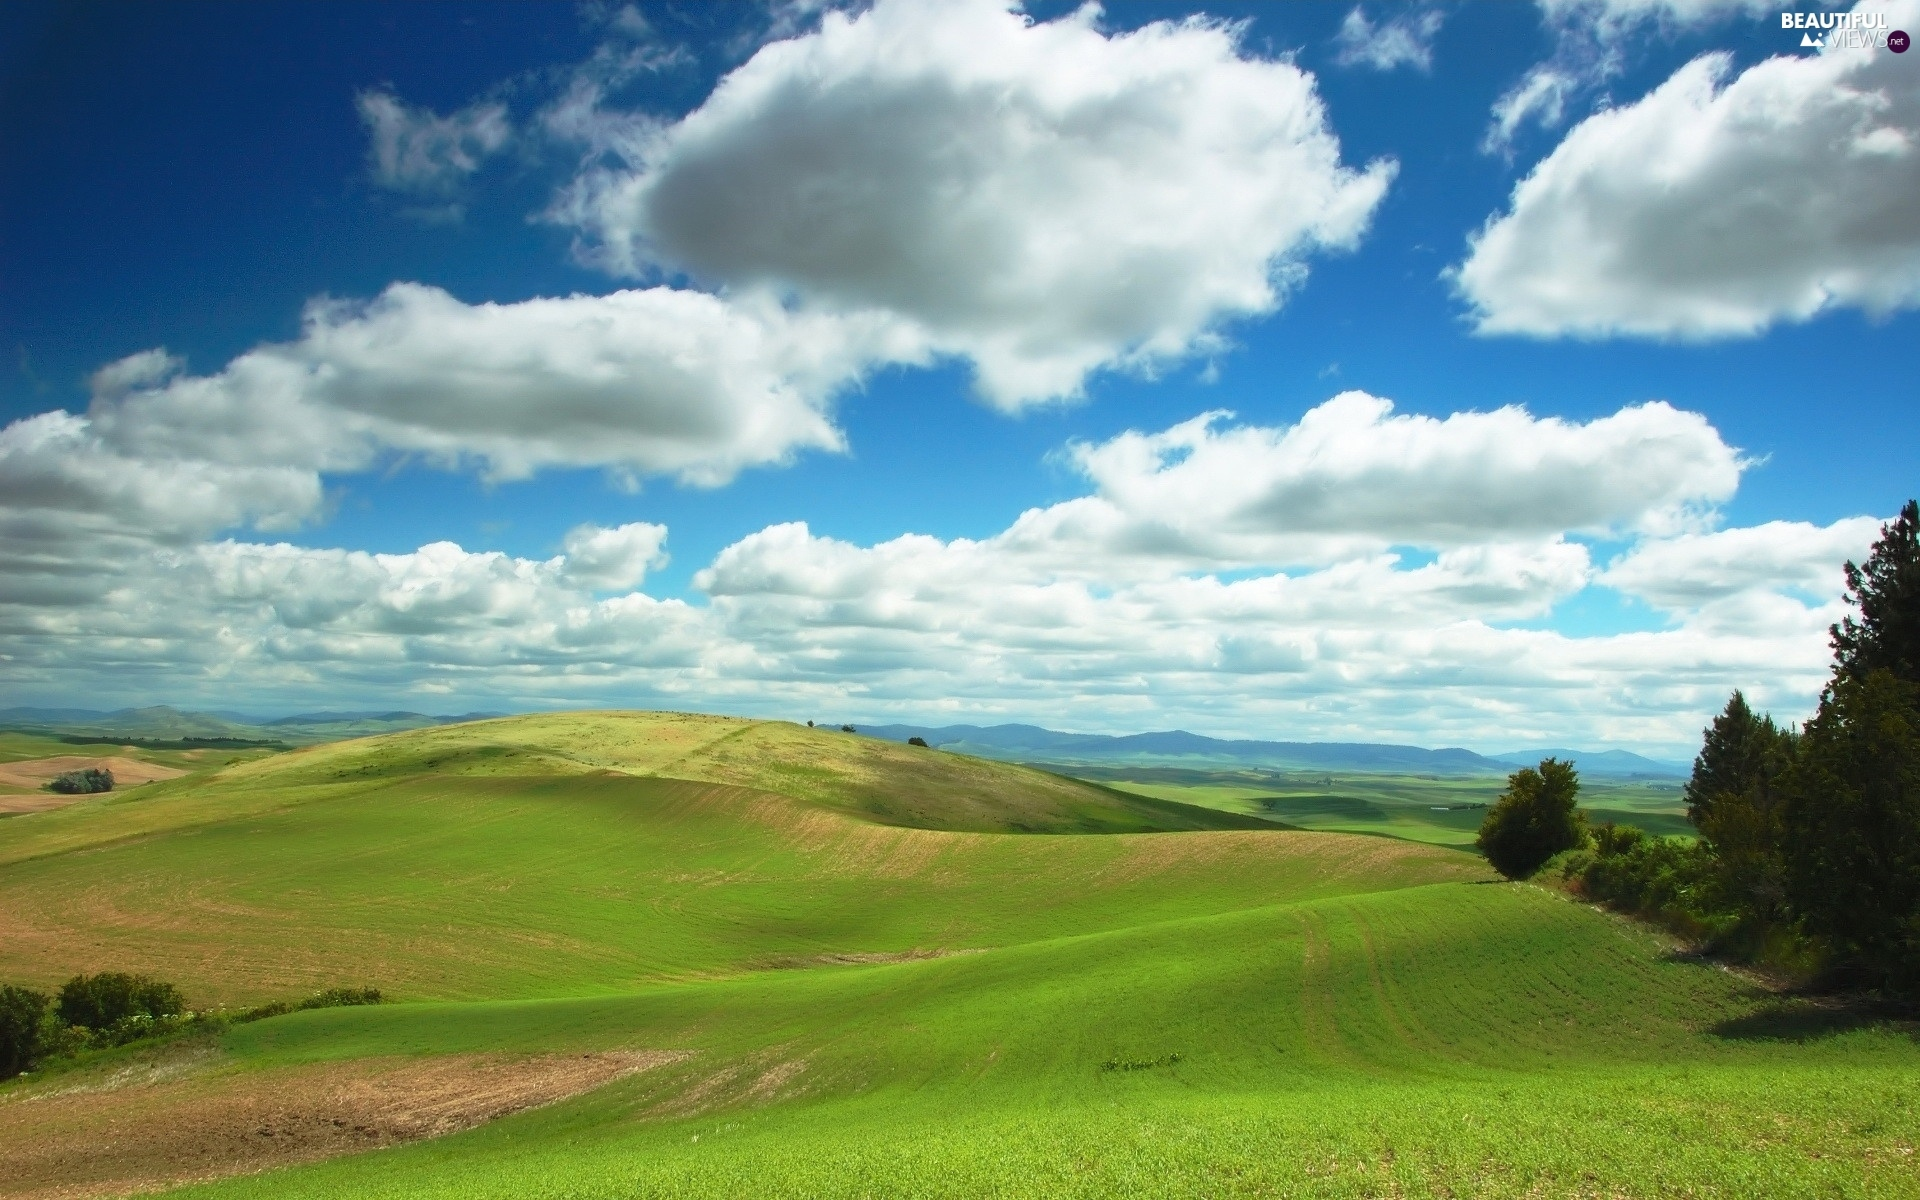 trees, panorama, Mountains, clouds, viewes, field